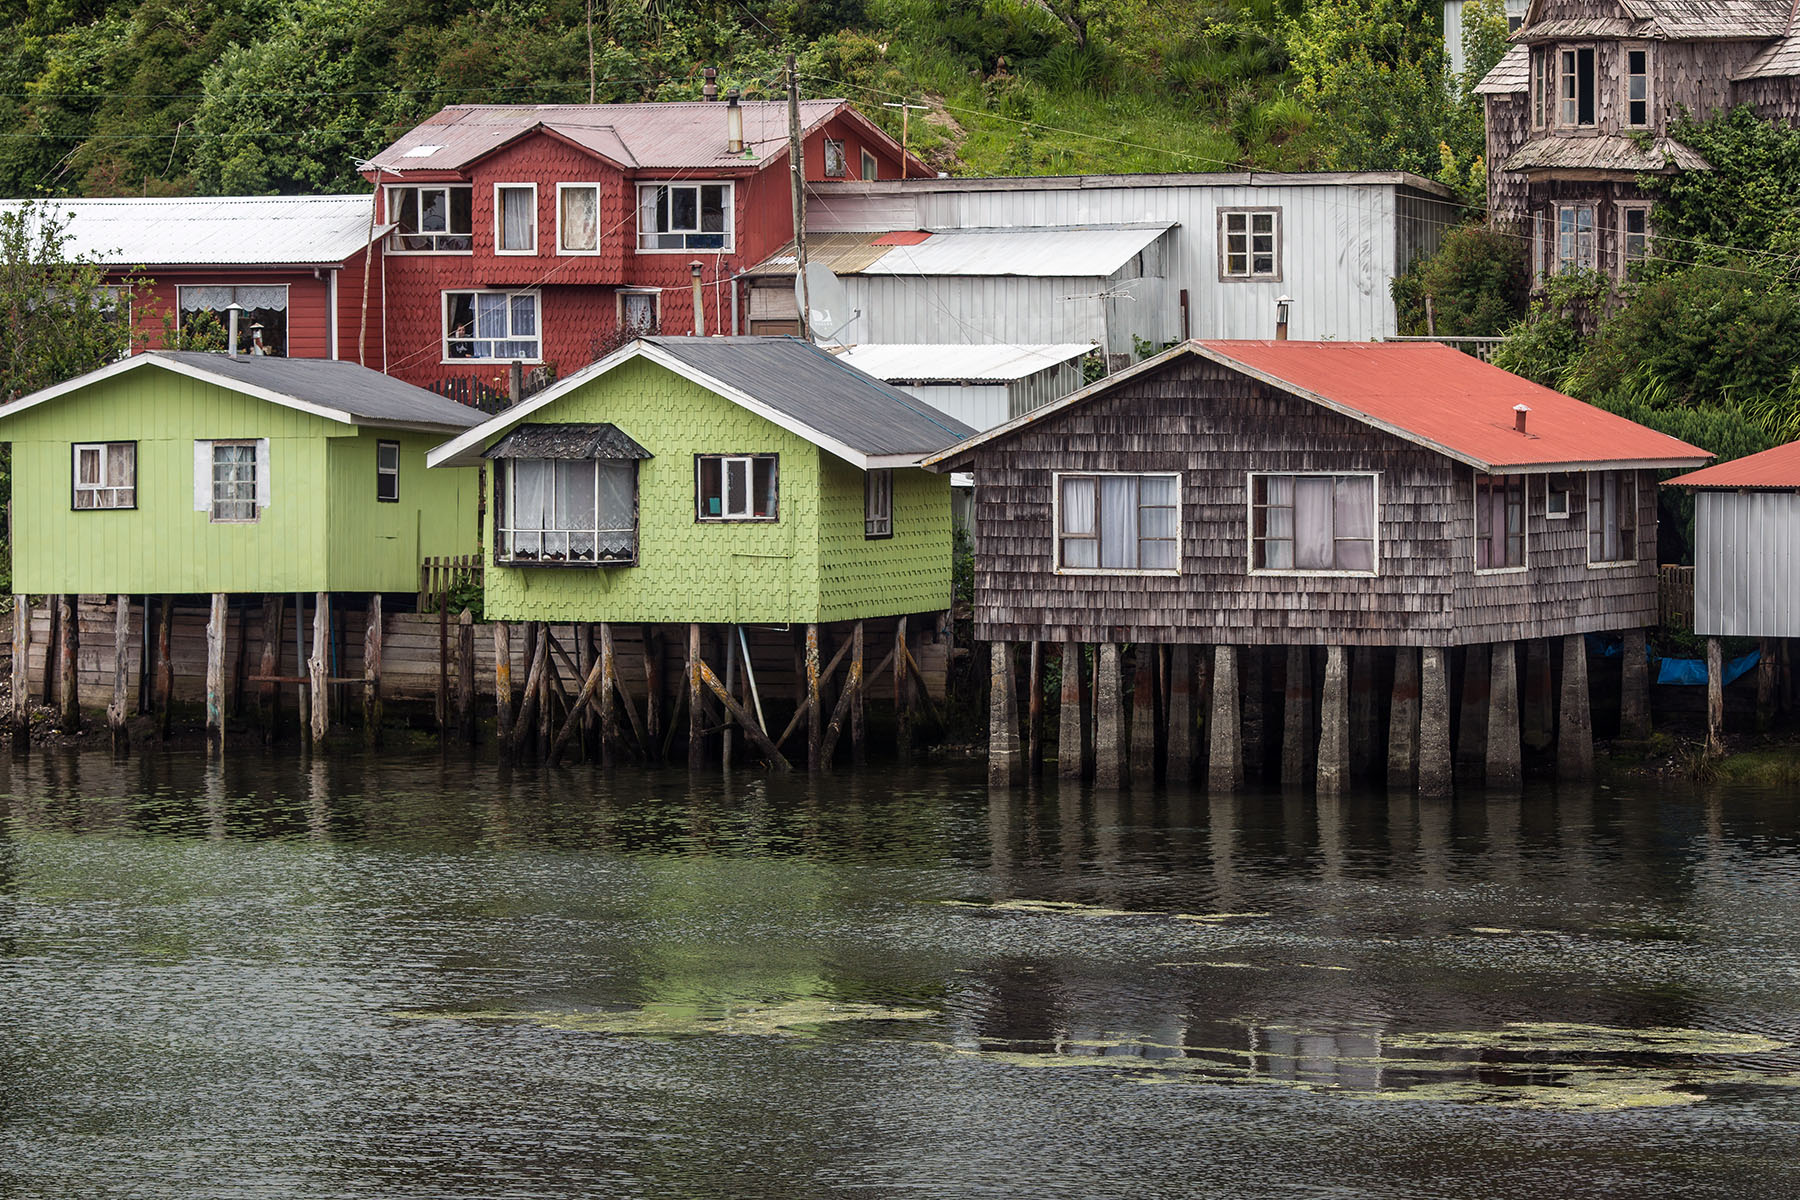 Slit Homes in Chiloe Chile